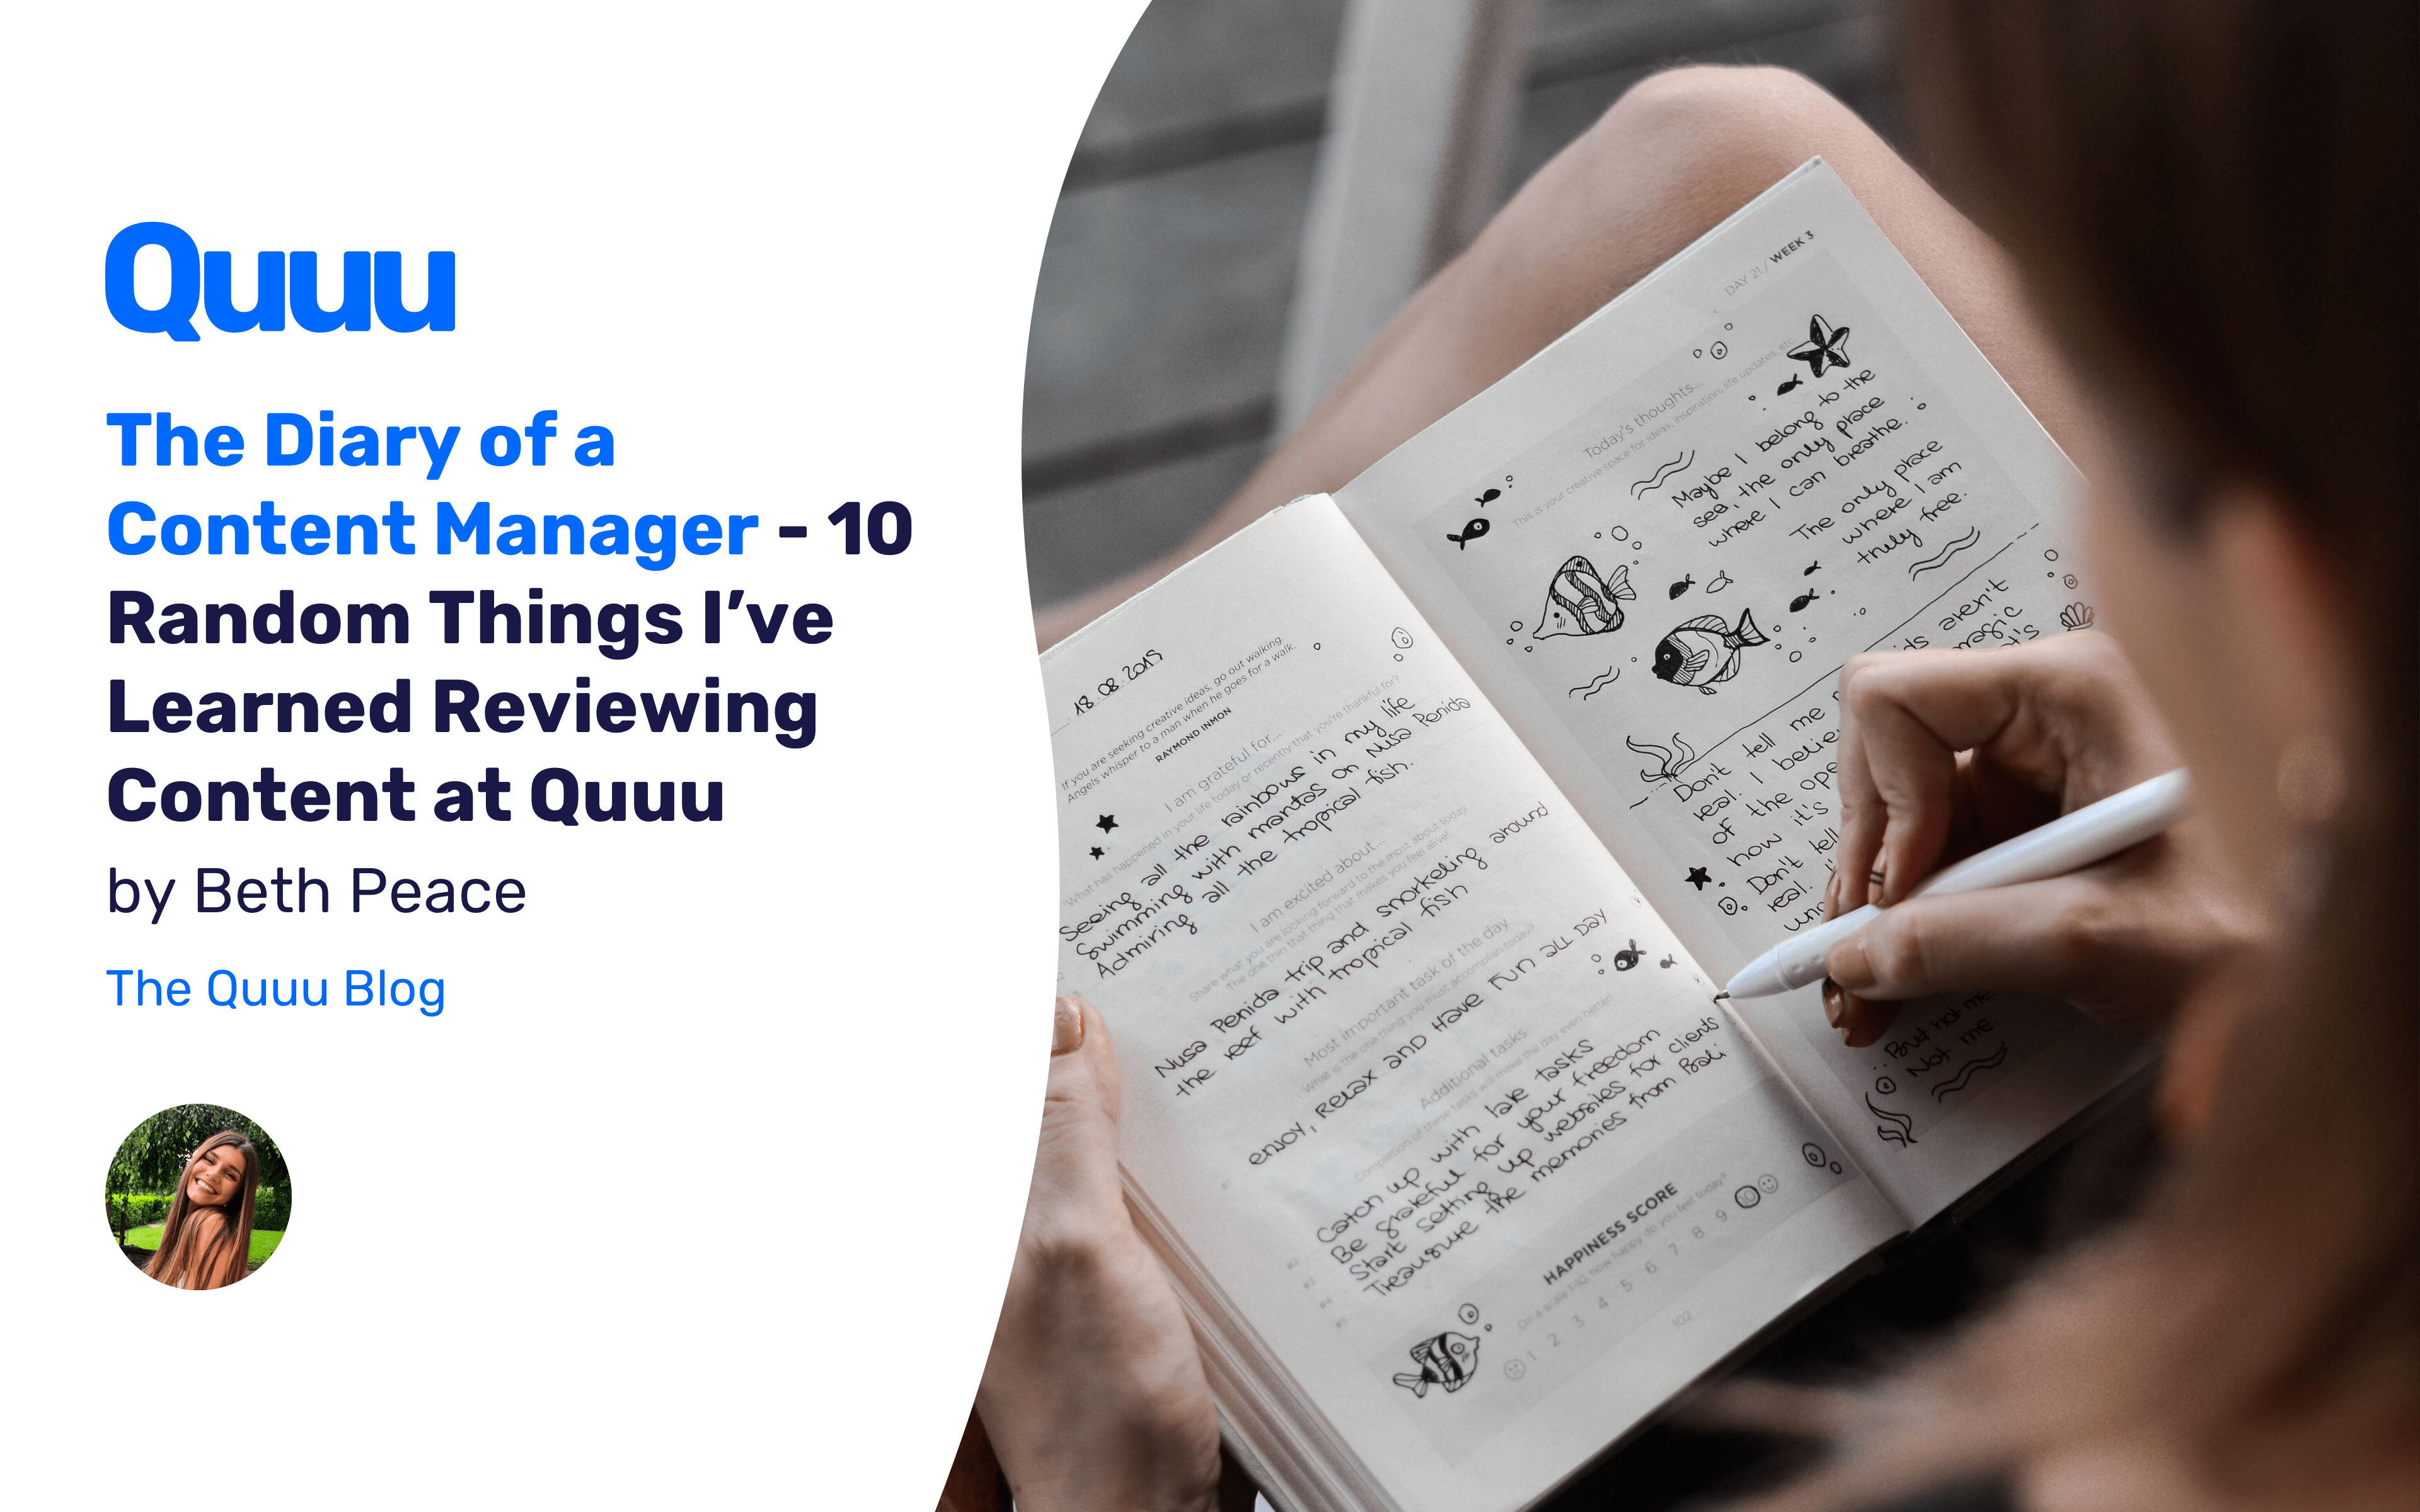 The Diary of a Content Manager - 10 Random Things I've Learned Reviewing Content at Quuu